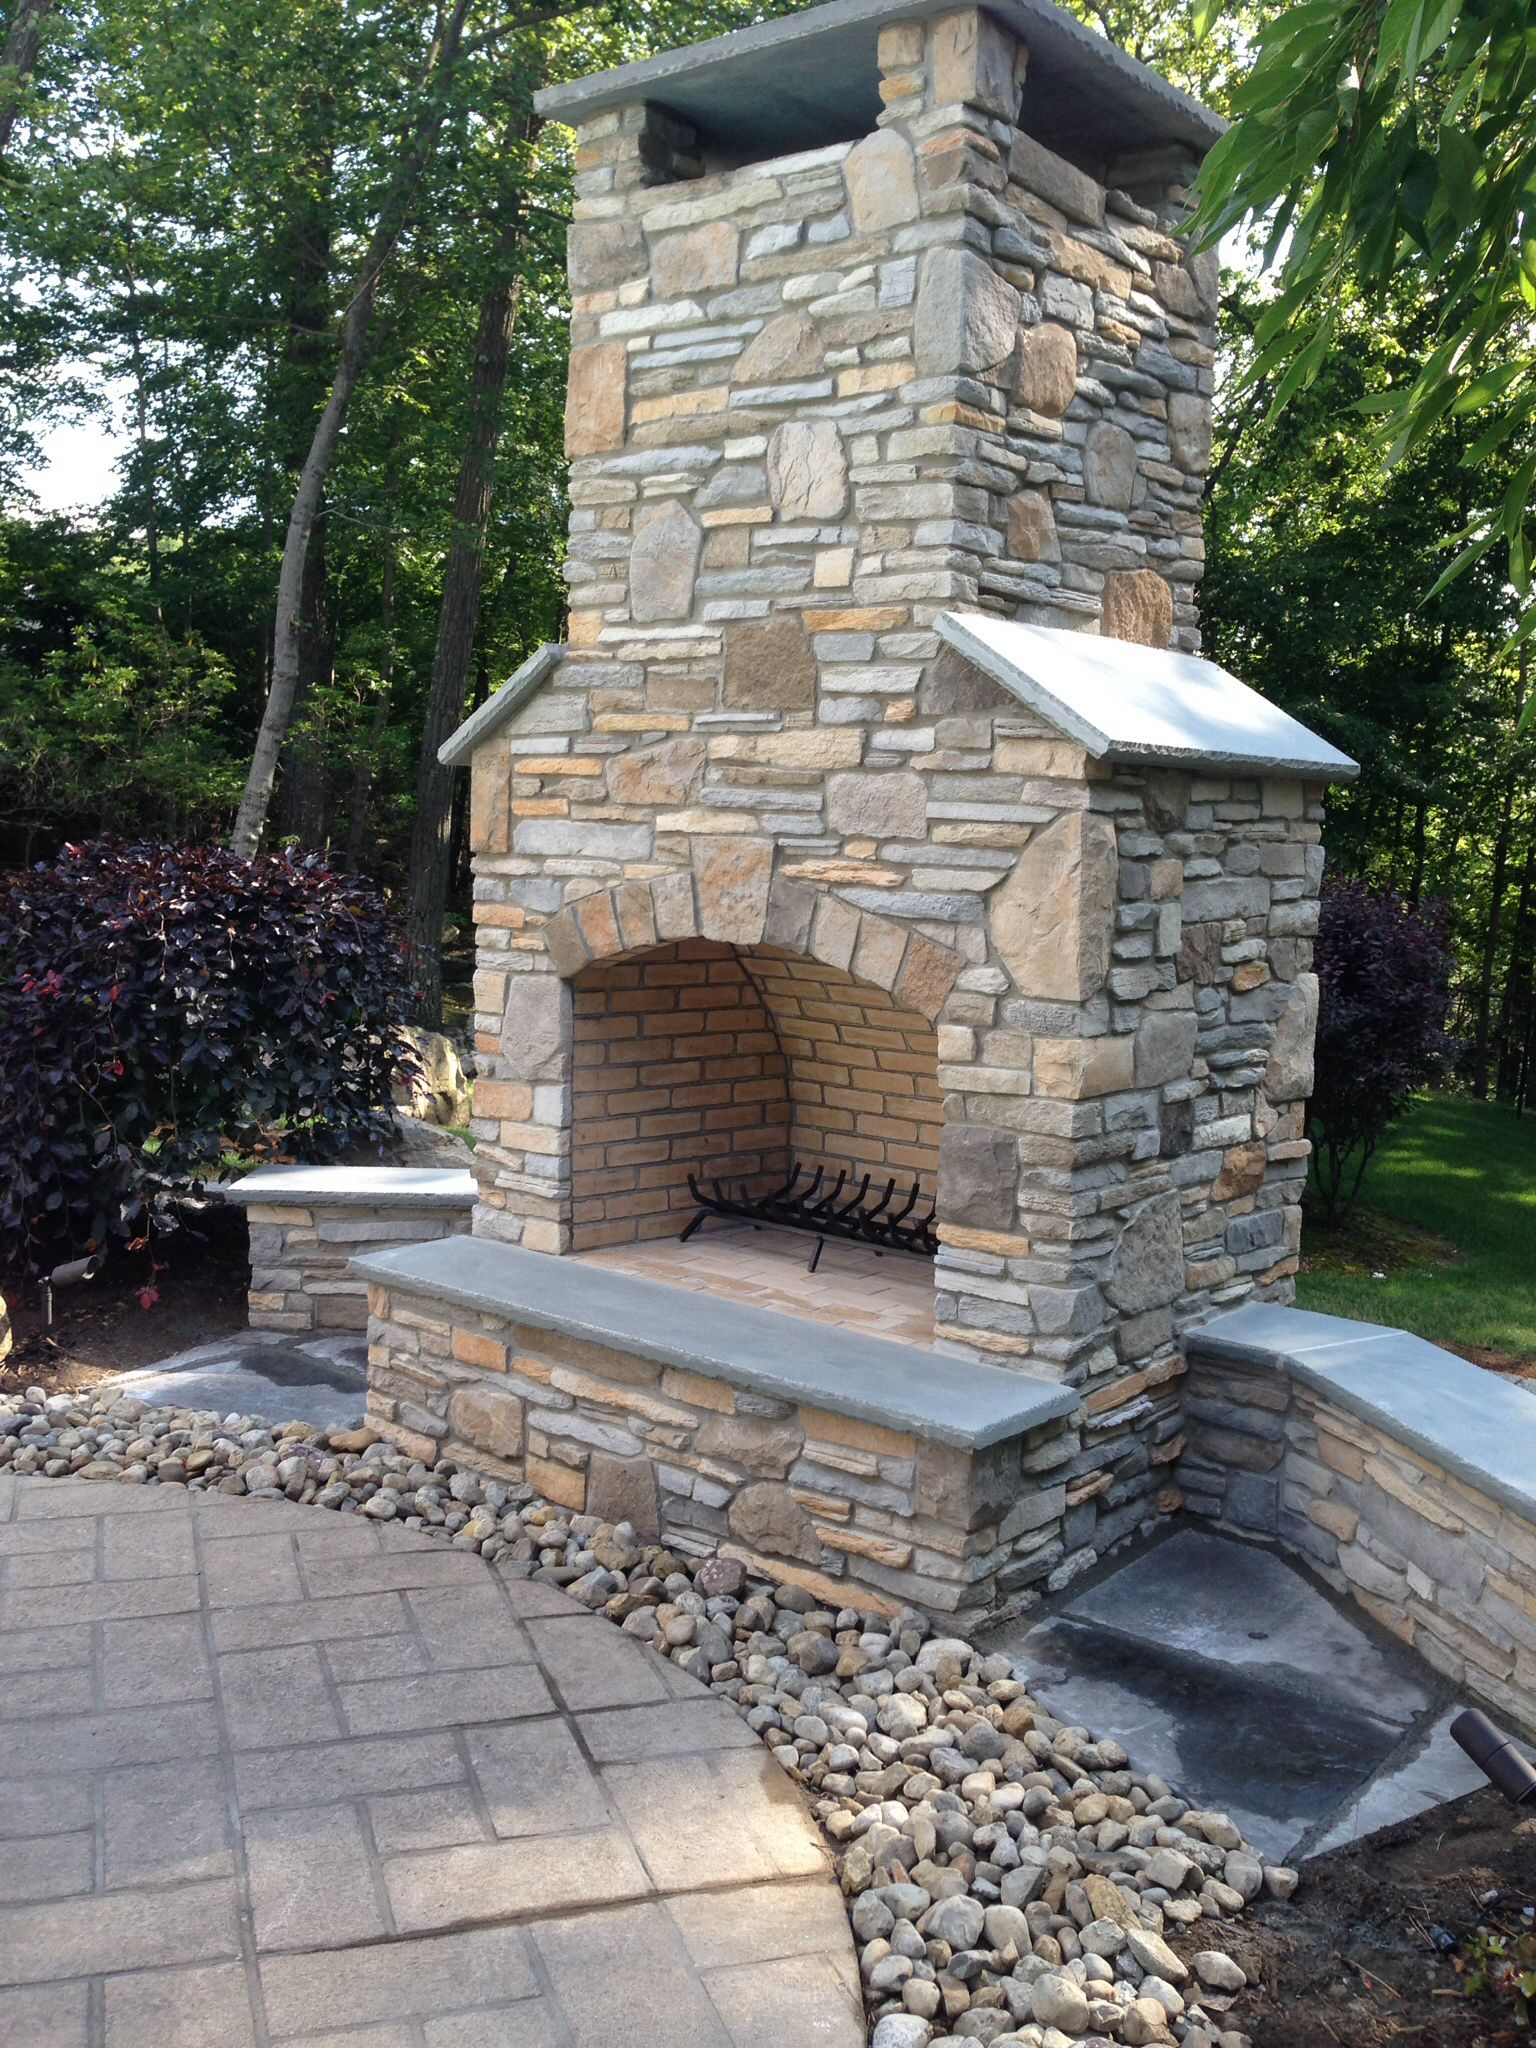 48 Inch Patio Table Cover: Outdoor Masonry Fireplace. 48 Inch Fireplace. Boral